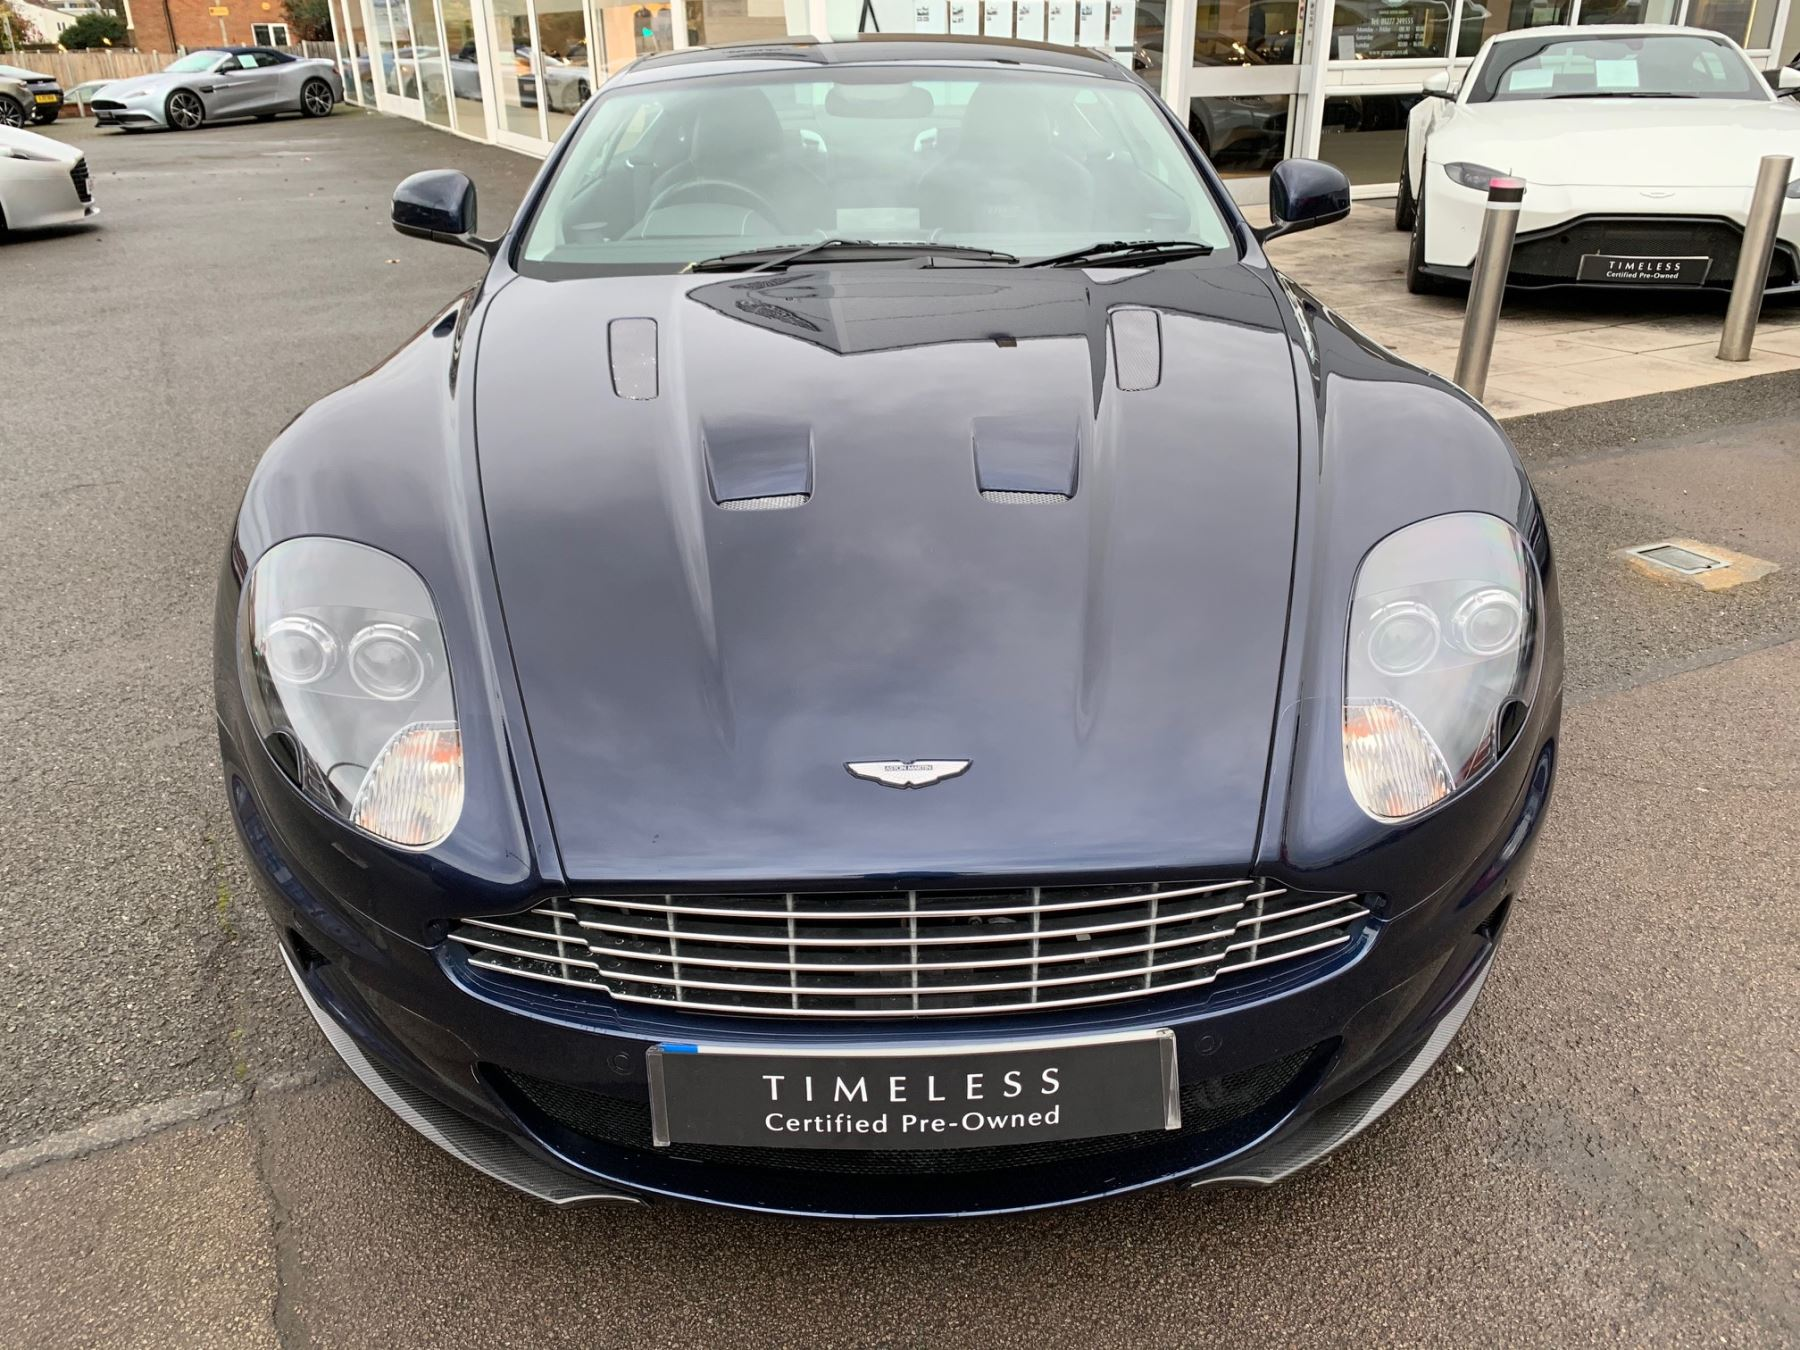 Aston Martin DBS V12 2dr Touchtronic image 4